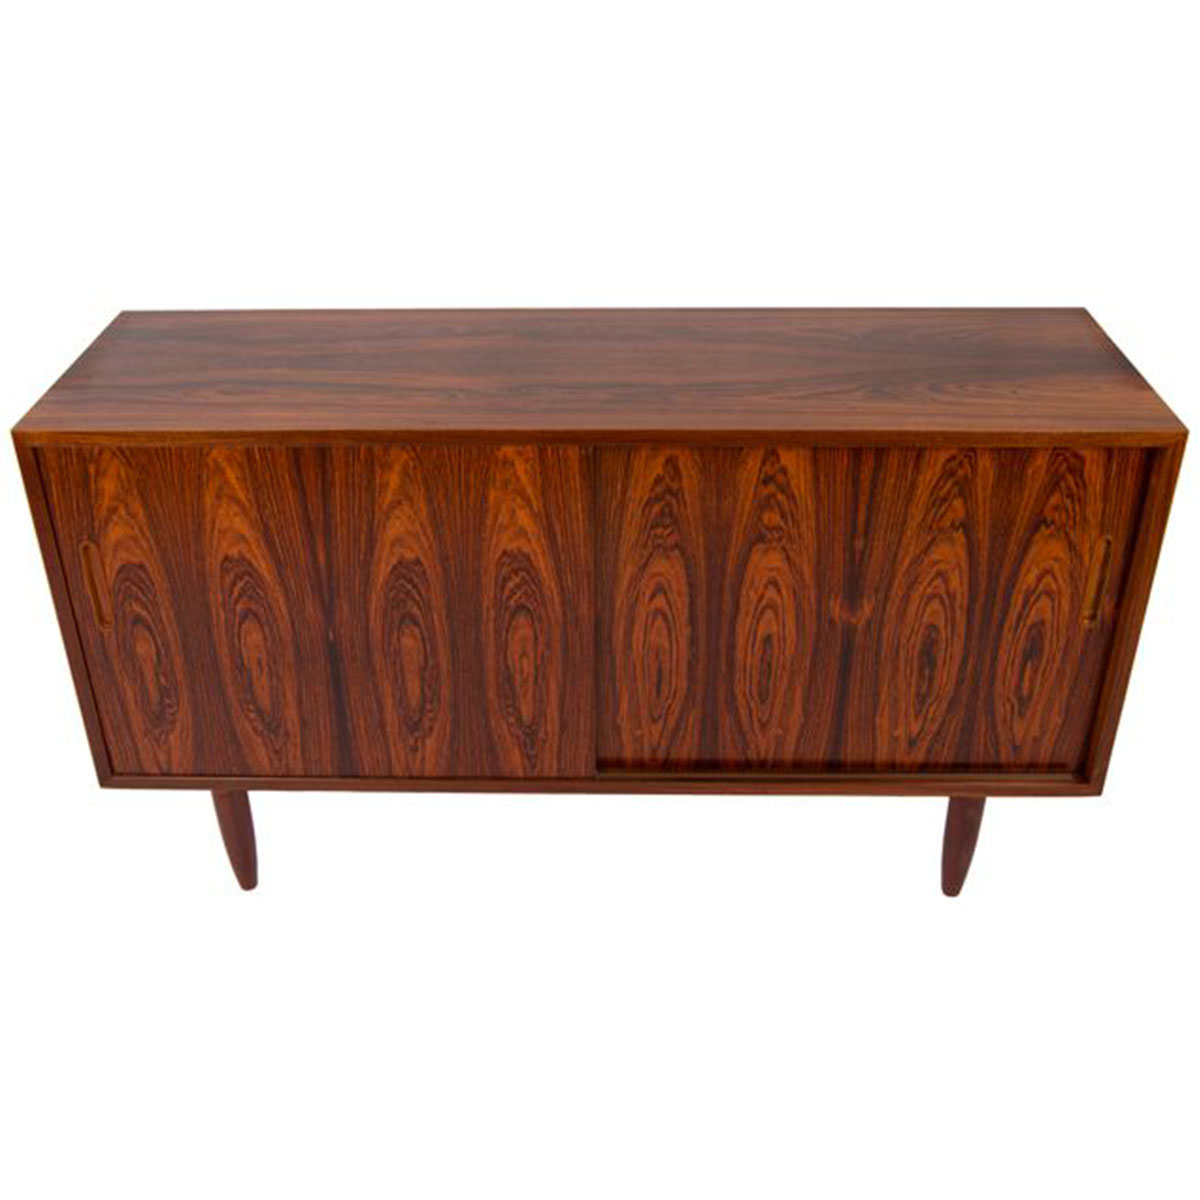 Condo-Sized Danish Modern Rosewood Sideboard / Media Cabinet